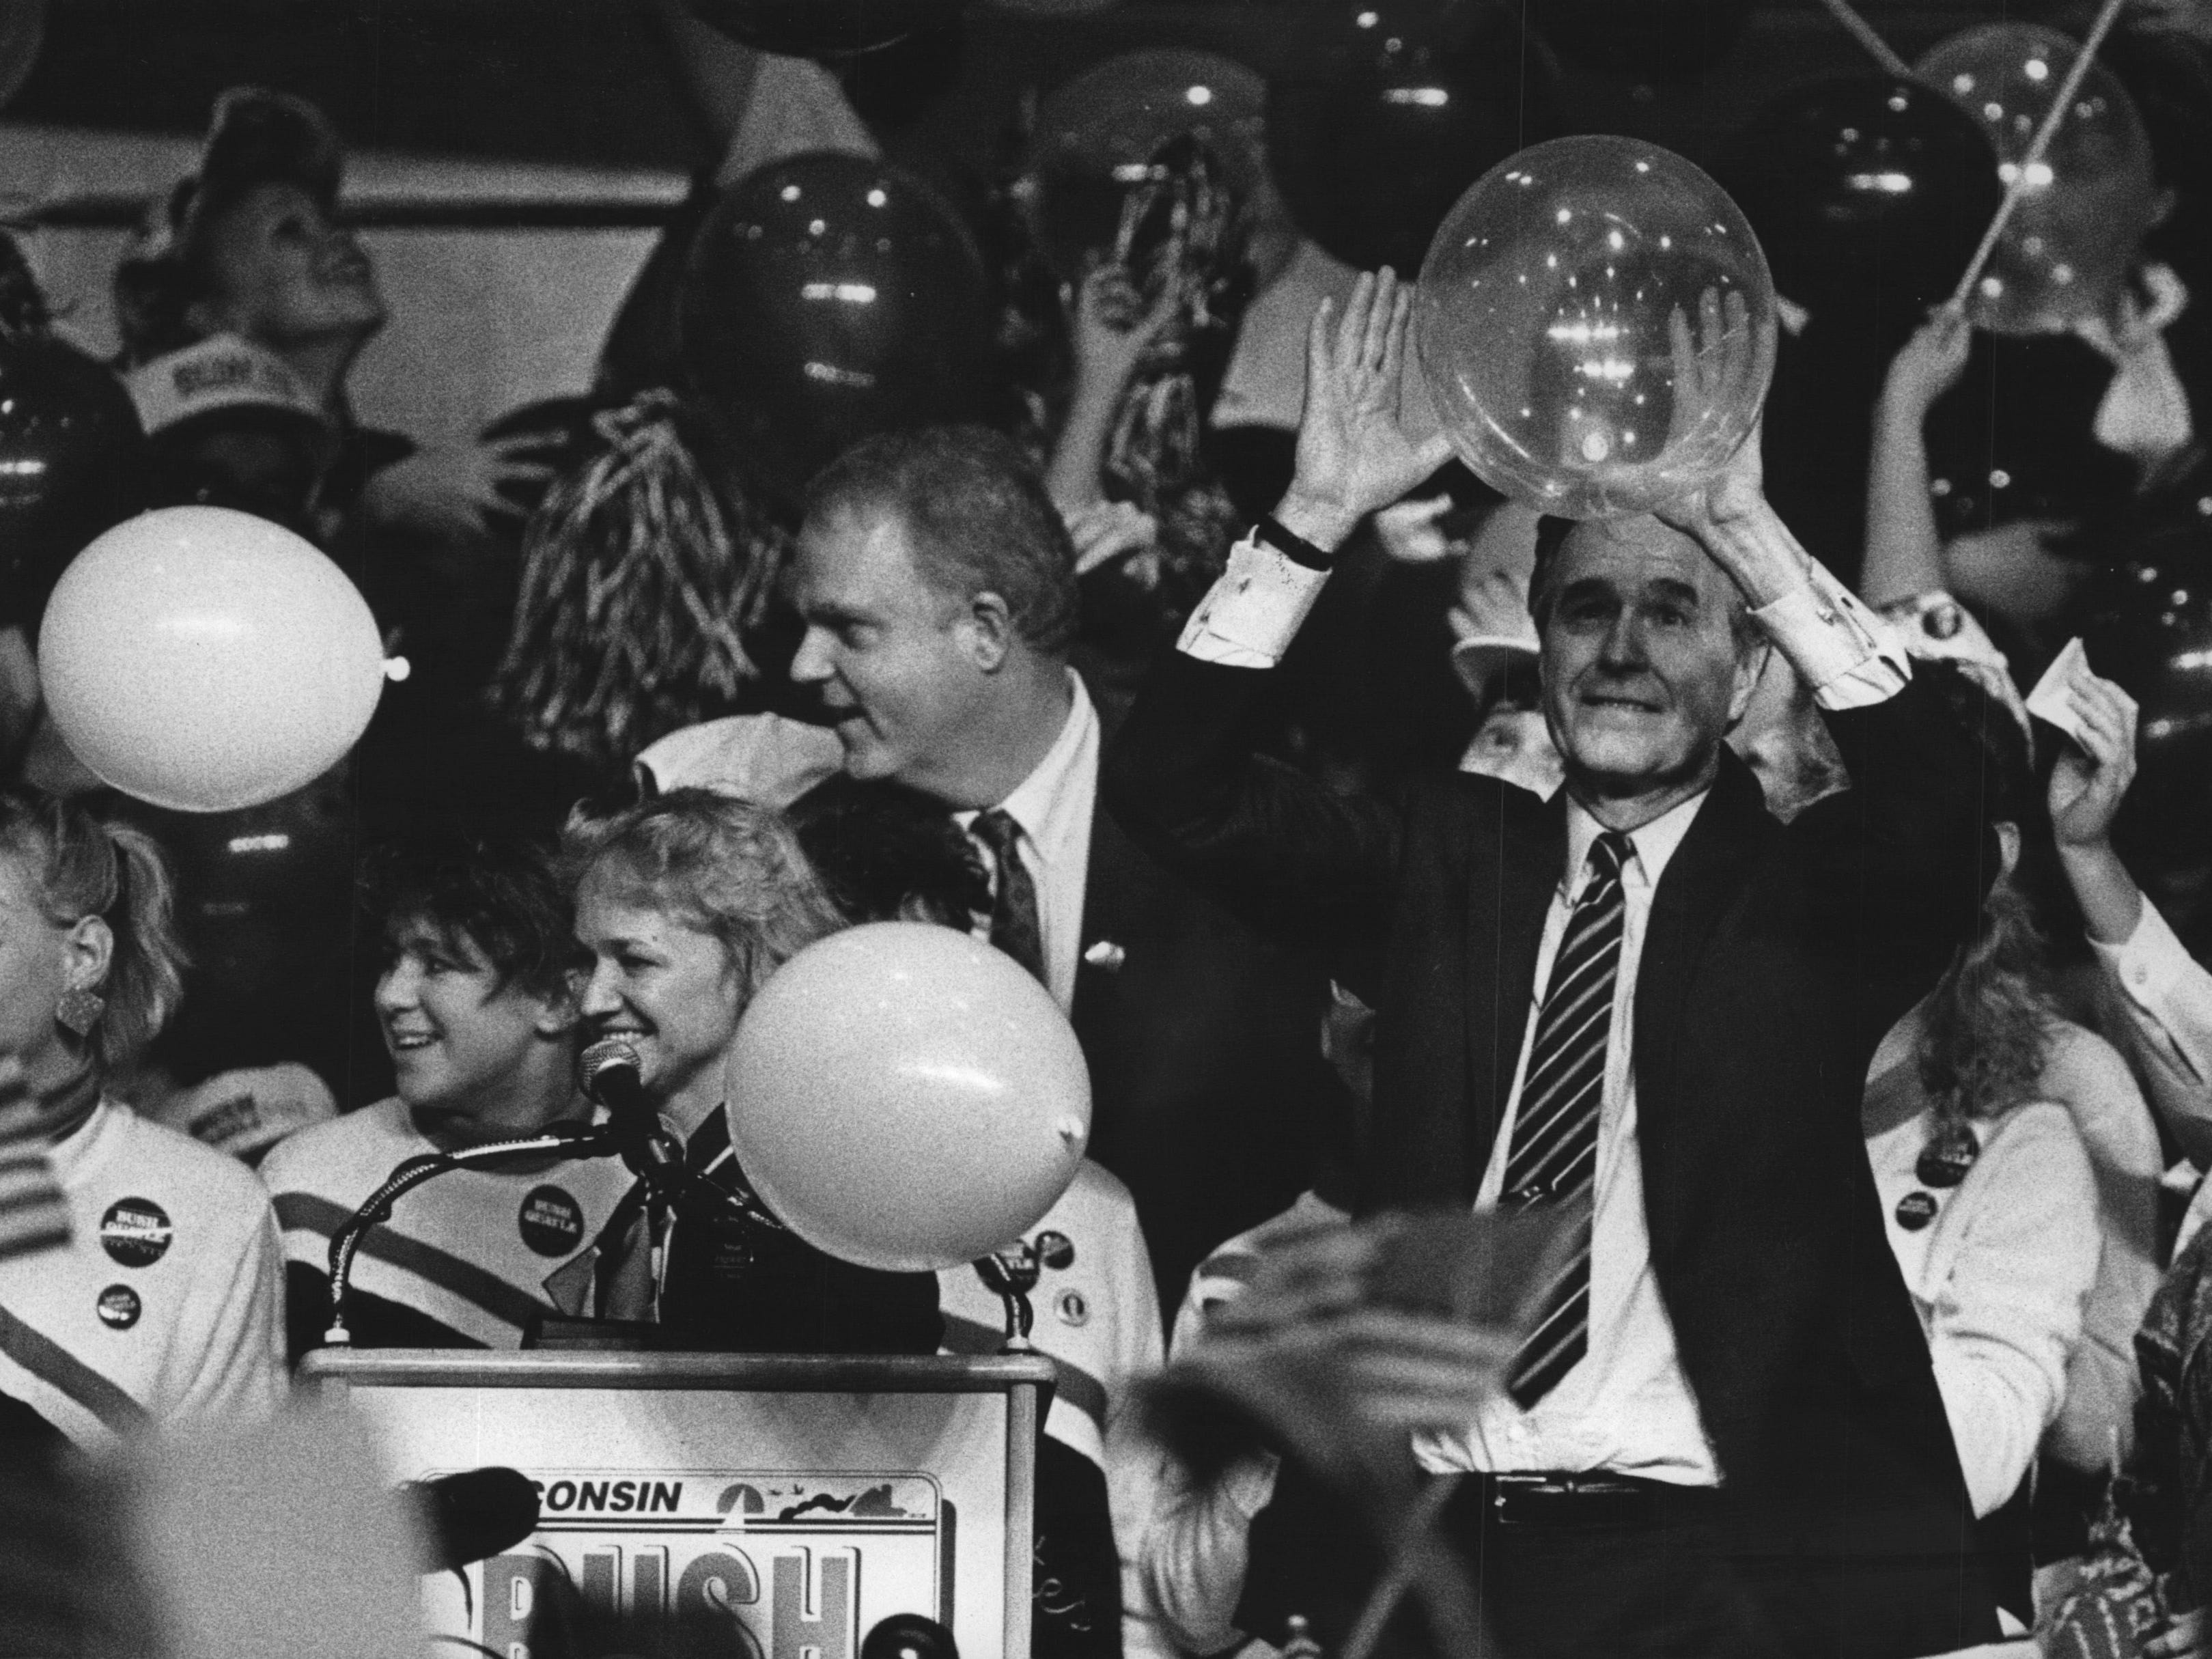 Flags were waving and overflow crowds were chanting as Vice President George Bush brought his presidential campaign to the Waukesha County Exposition Center in 1988. Republican presidential nominee George Bush batted a balloon around after hundreds of them fell.